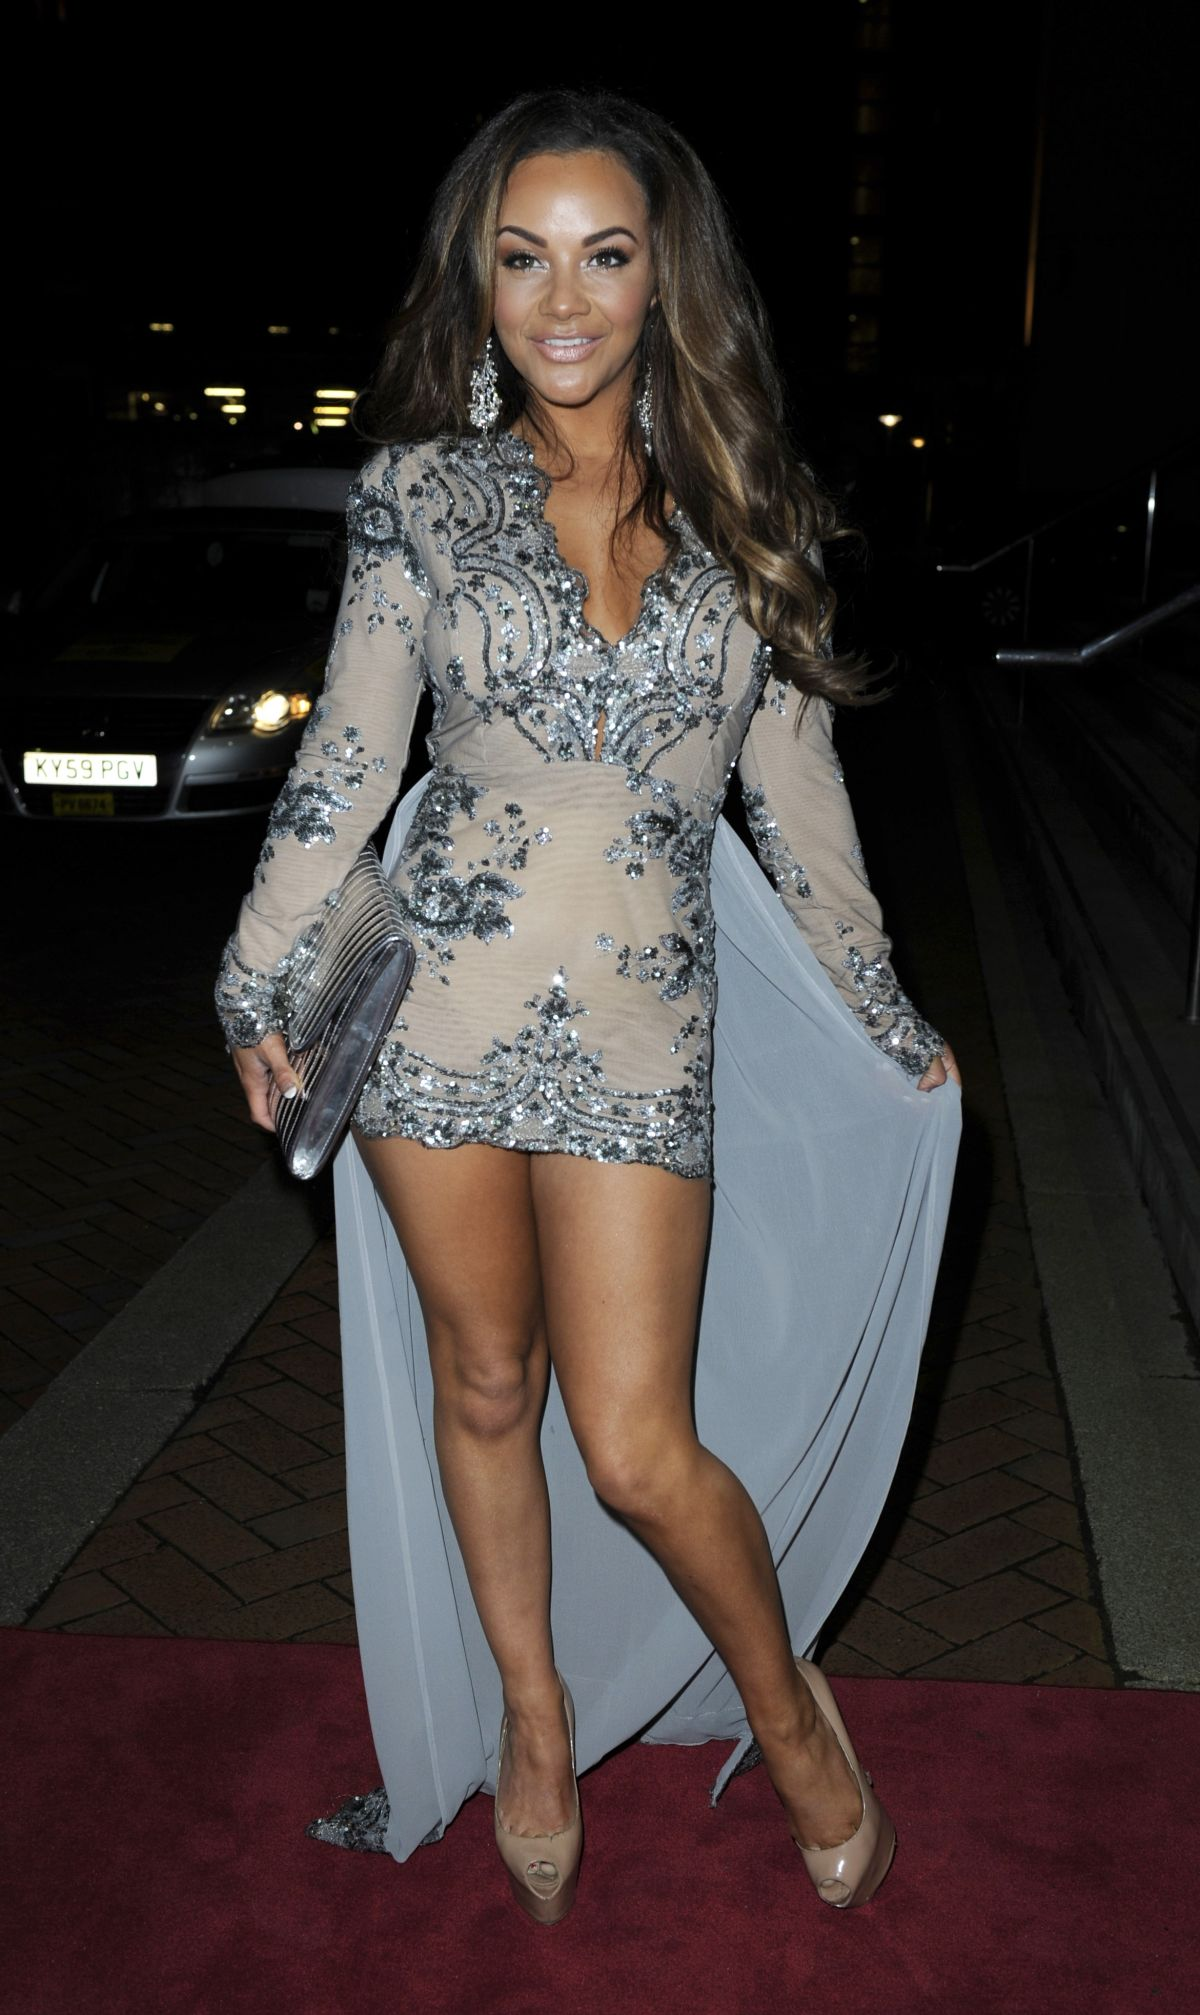 CHELSEE HEALEY at The Mirror Ball at Lowry Hotel in Manchester